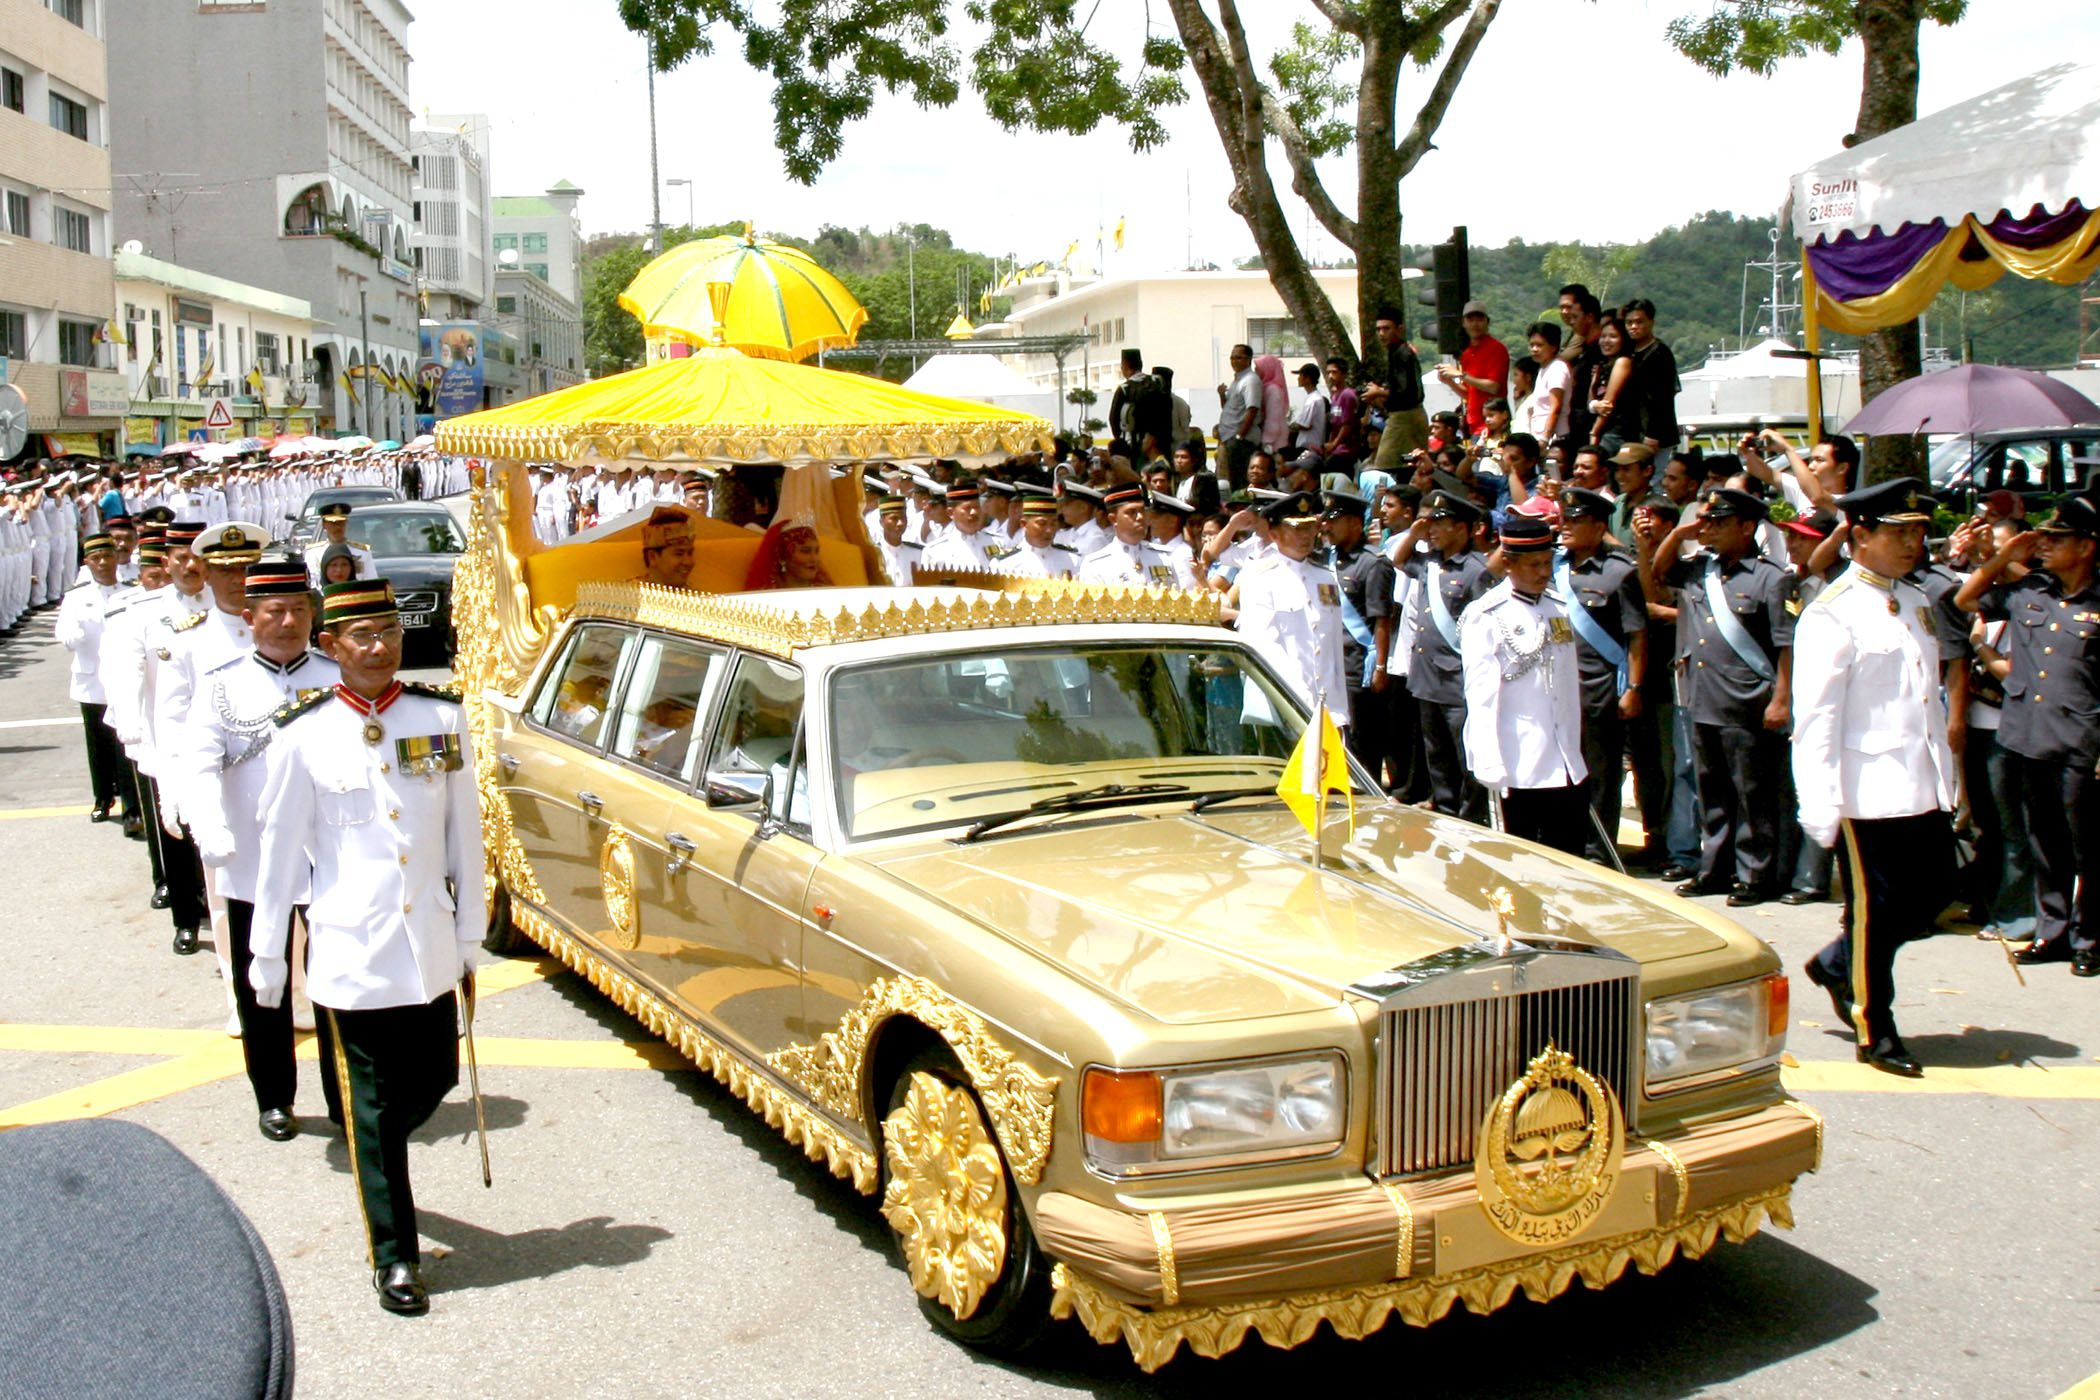 Photo of the Sultan of Brunei's gold-plated Rolls Royce. Image courtesy of Royalista(dot)com.